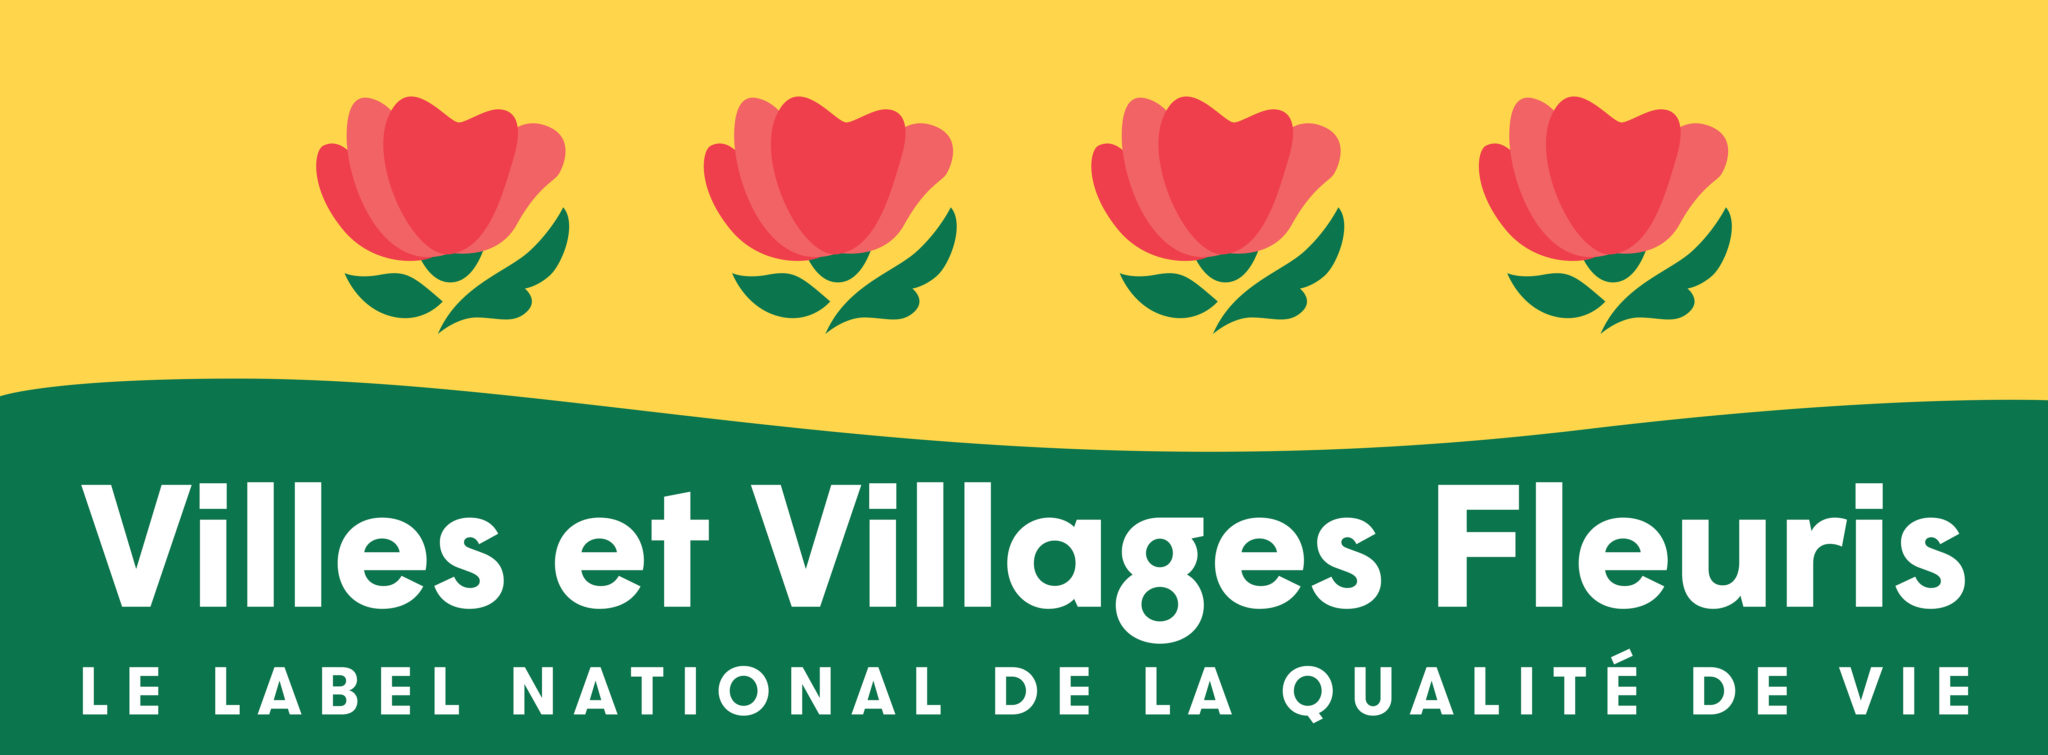 Villes et villages fleuris